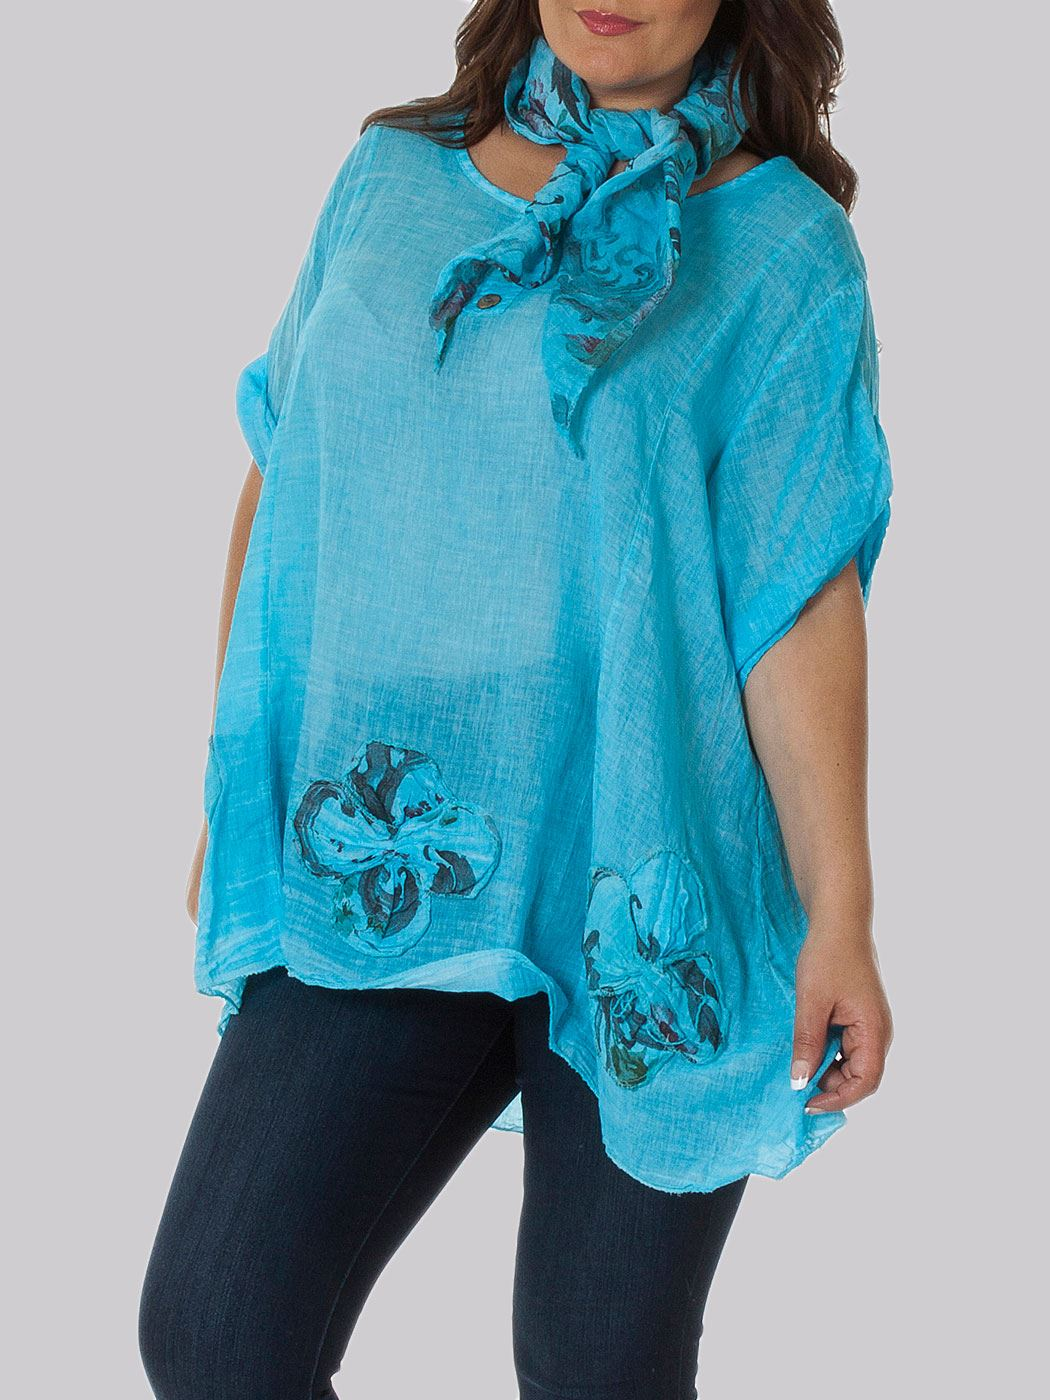 Wholesale Ladies 3d FloralTop Scarf Top